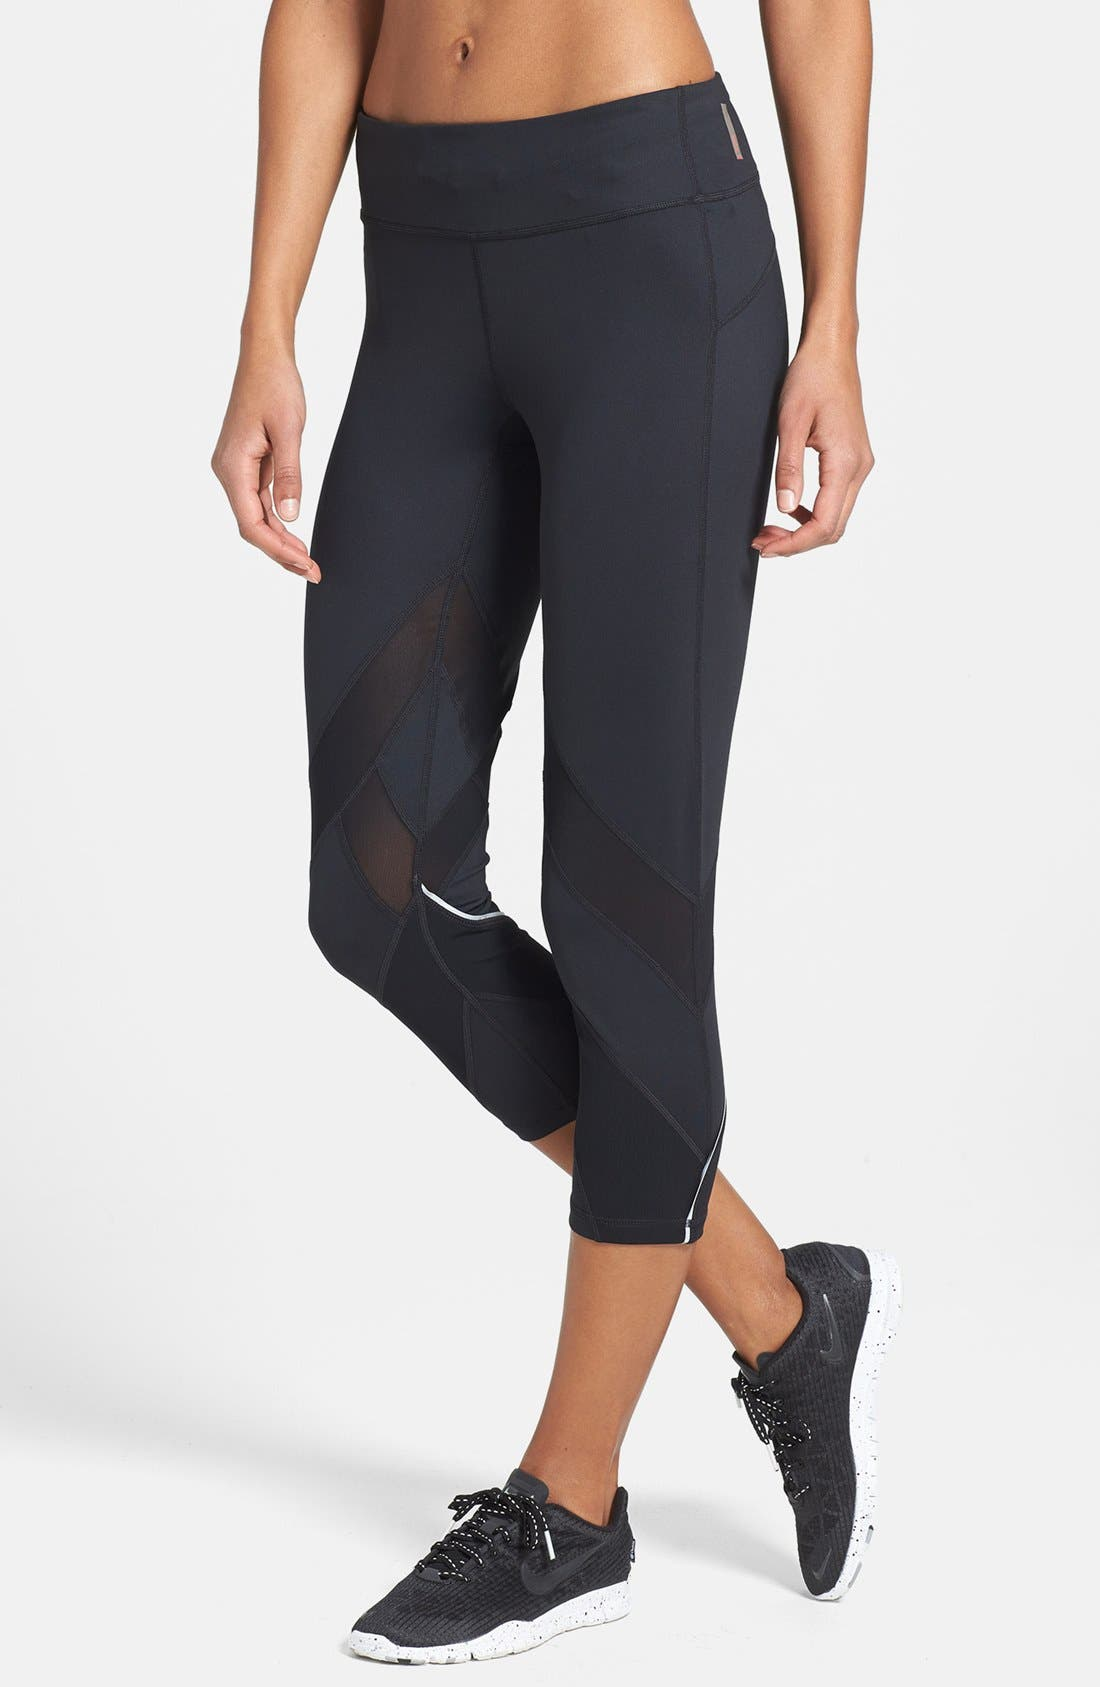 'Bees Knees' Slim Fit Running Capris,                         Main,                         color, 001